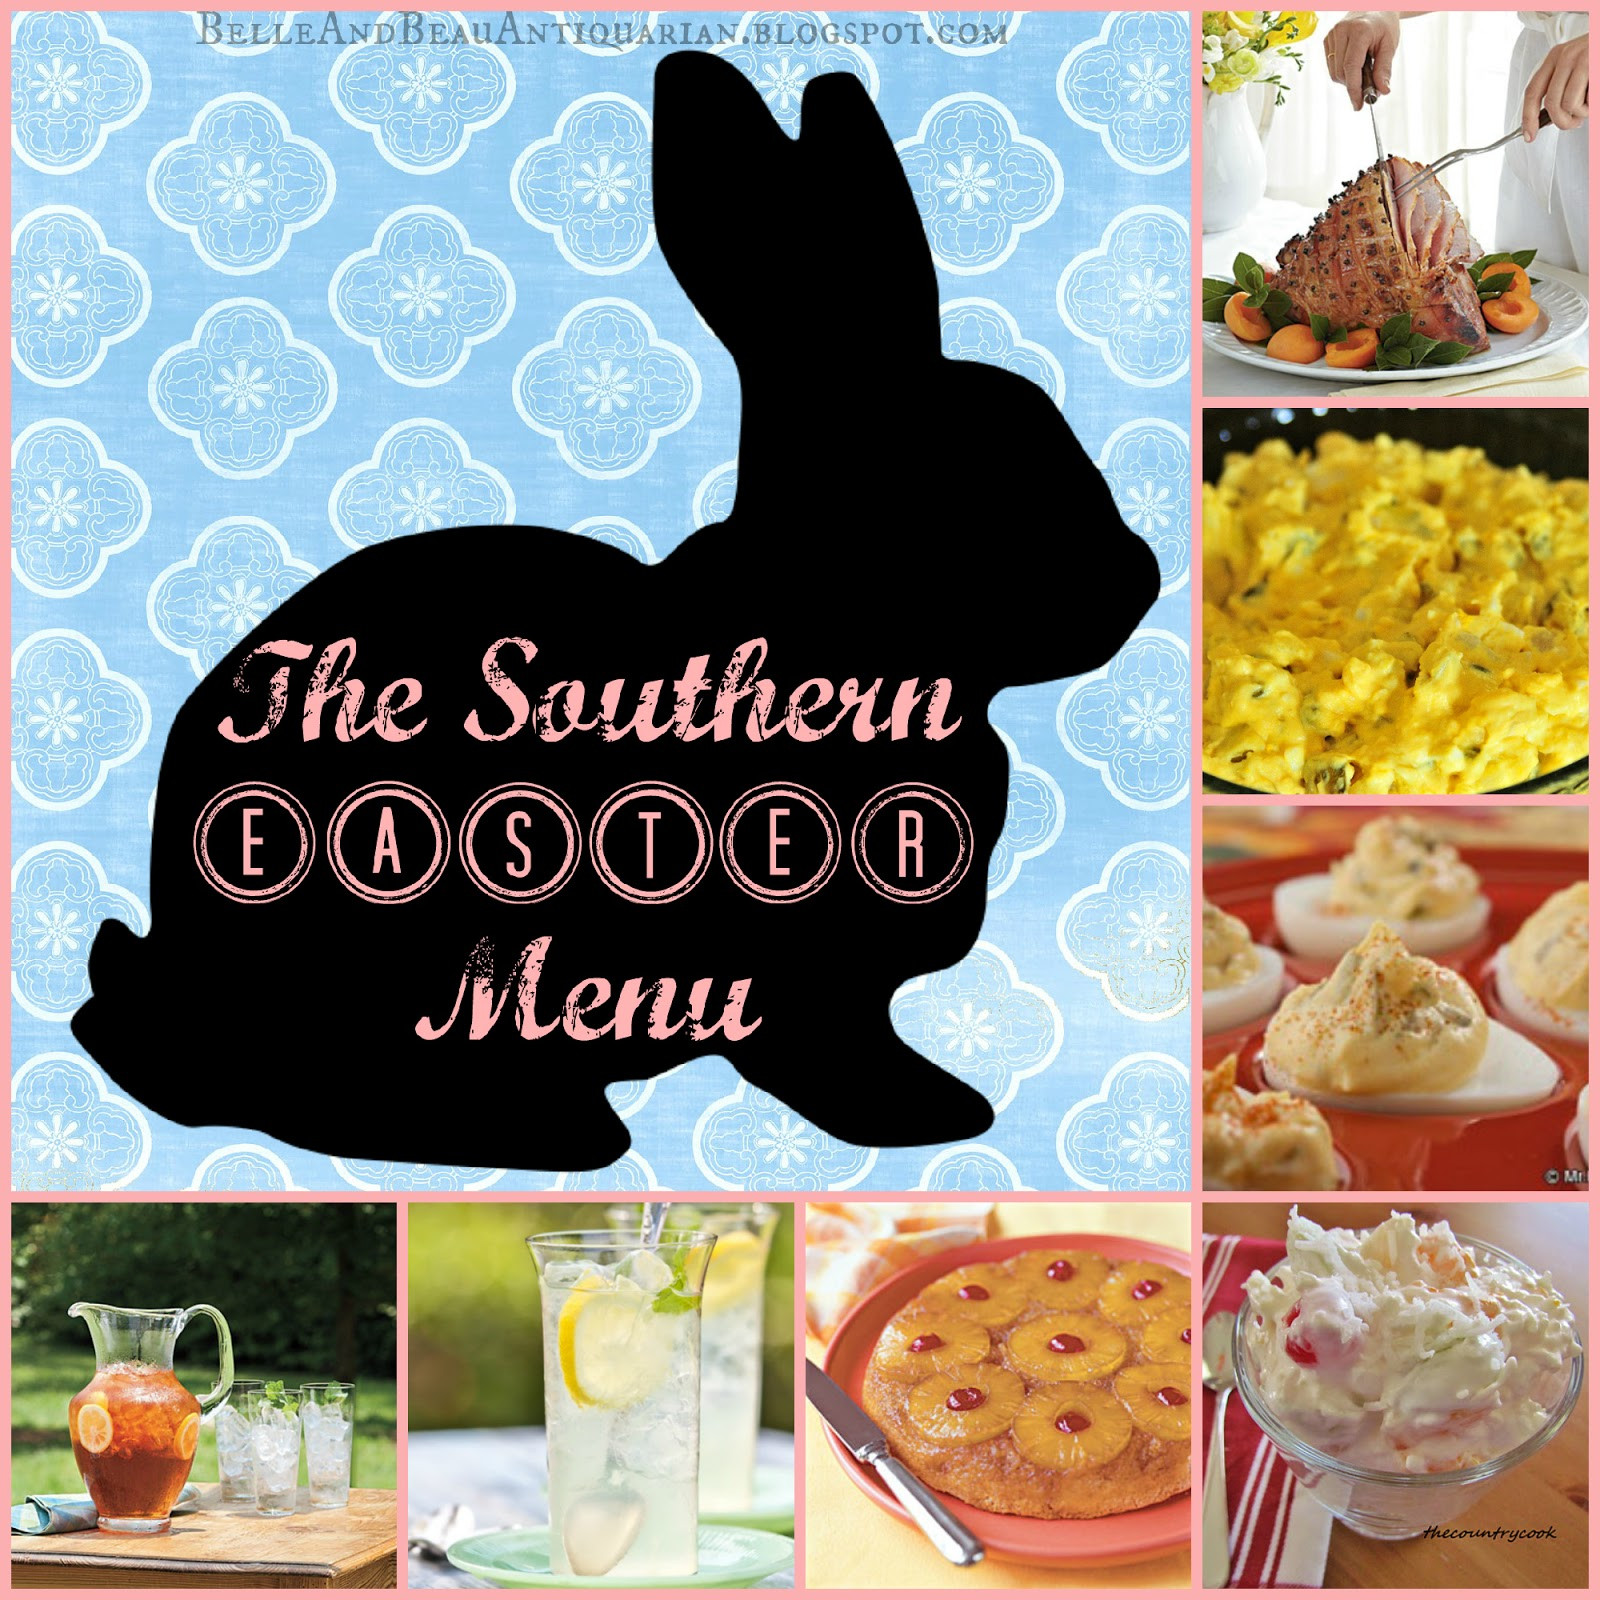 Southern Easter Dinner Menu  Belle & Beau Antiquarian The Southern Easter Menu